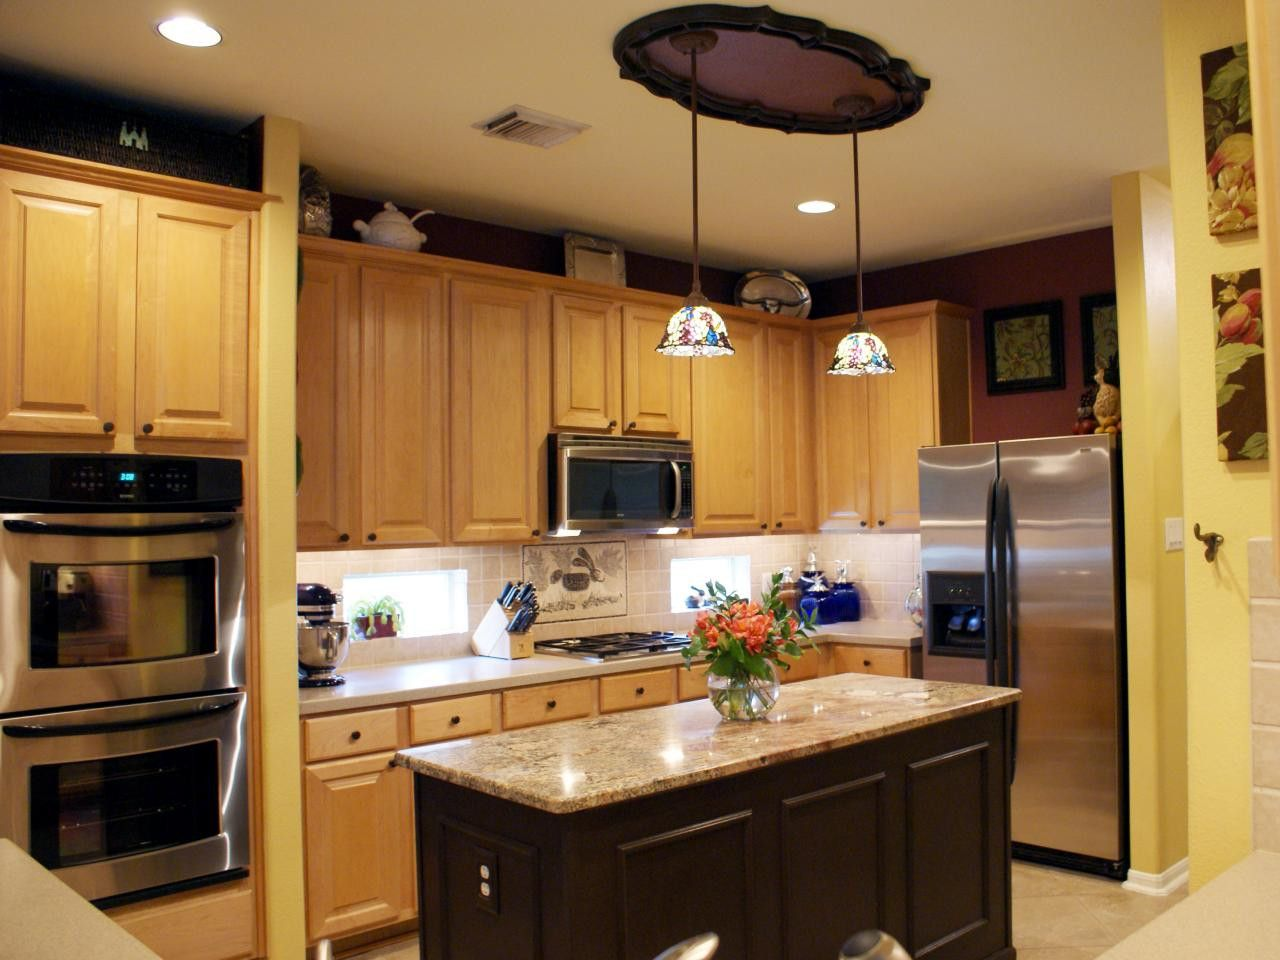 50+ How Much Does It Cost to Replace Kitchen Cabinet Doors ...